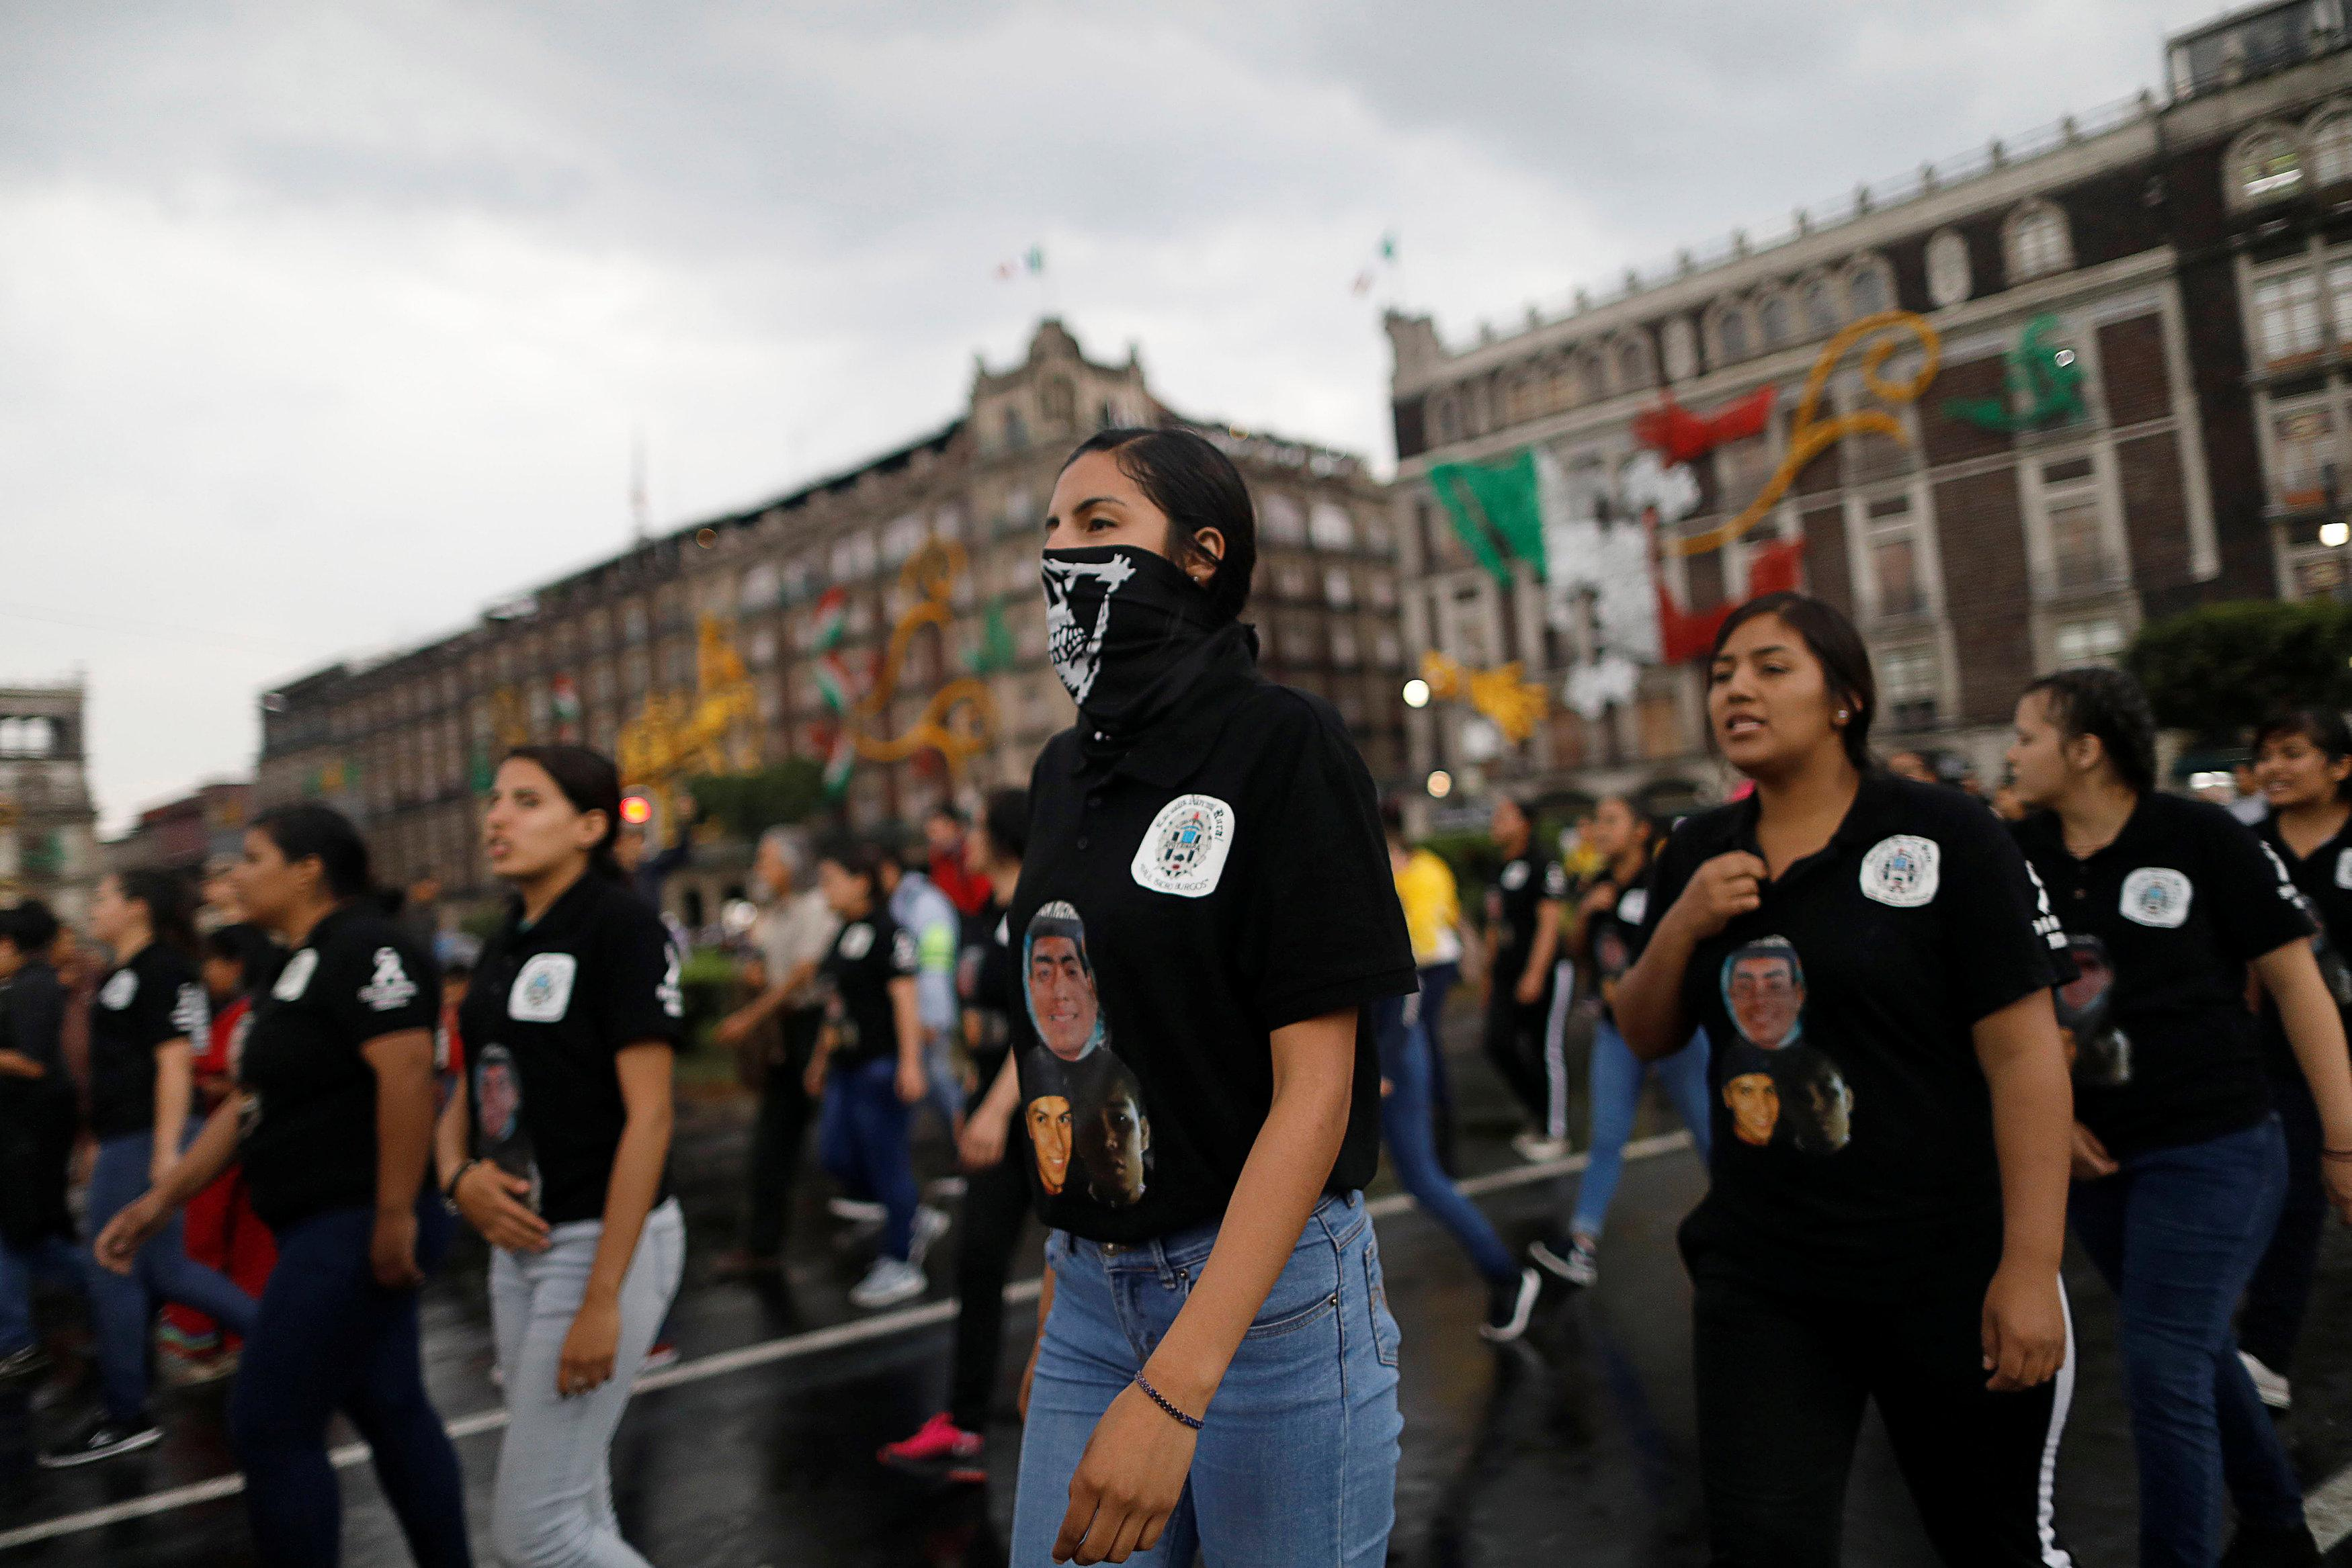 Demonstrators take part during a march to mark the fourth year since the disappearance of the 43 students of training college Raul Isidro Burgos in the state of Guerrero, in Mexico City, Mexico September 26, 2018. Edgard Garrido